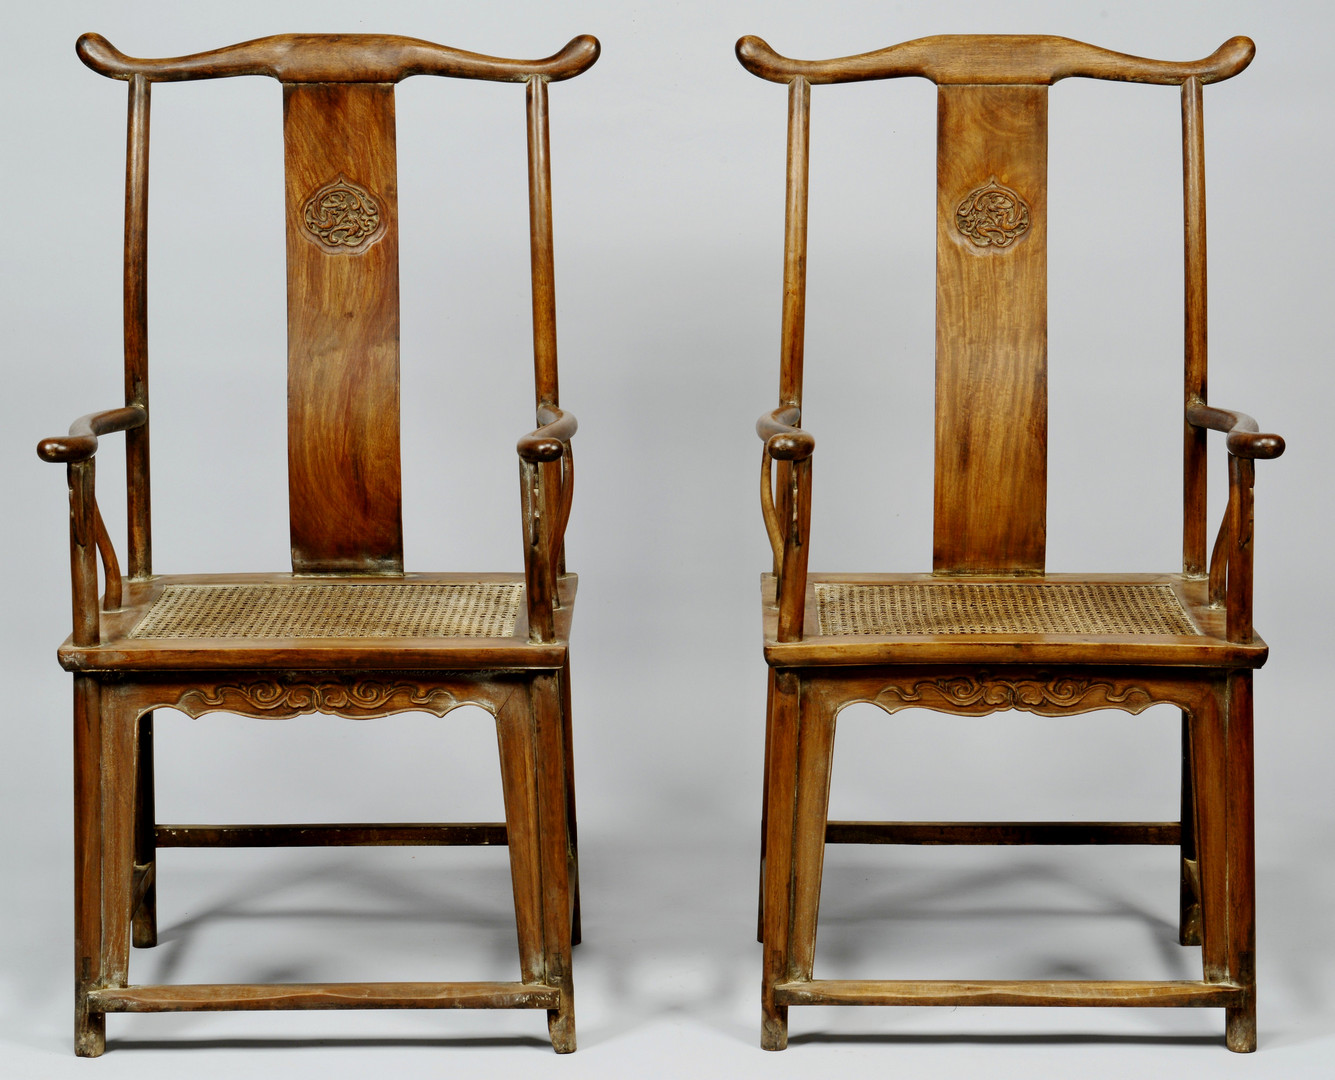 Lot 33: Pair of Chinese Hardwood Yokeback Armchairs, Modern